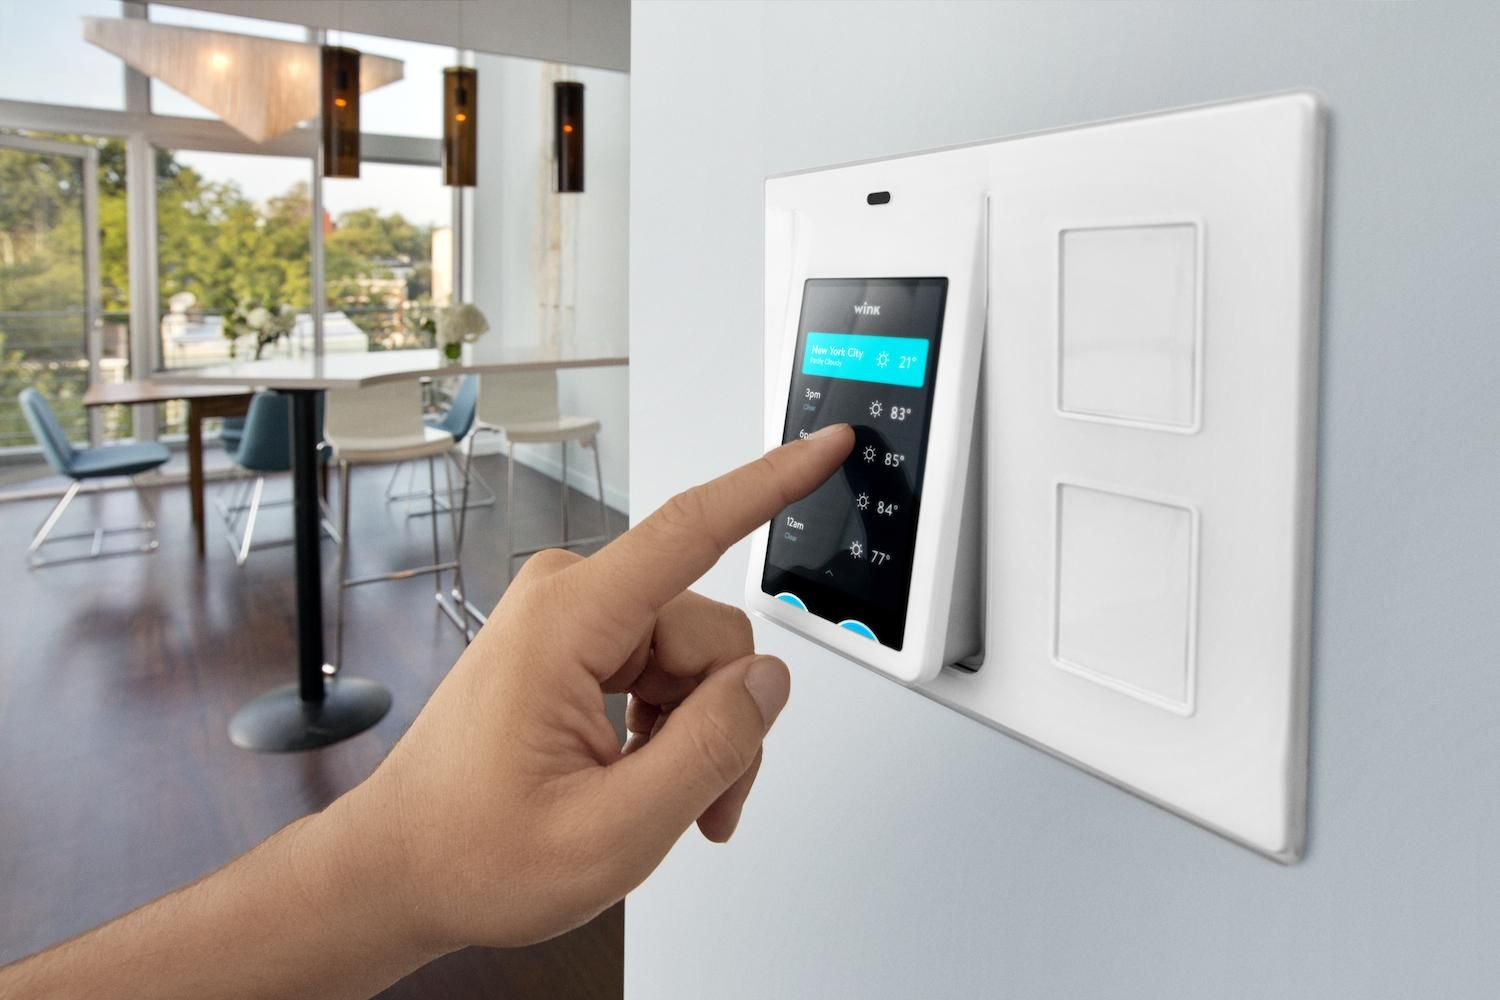 Wink Relay Alsoa Smart Home Control Smart Home Security Smart Home Automation